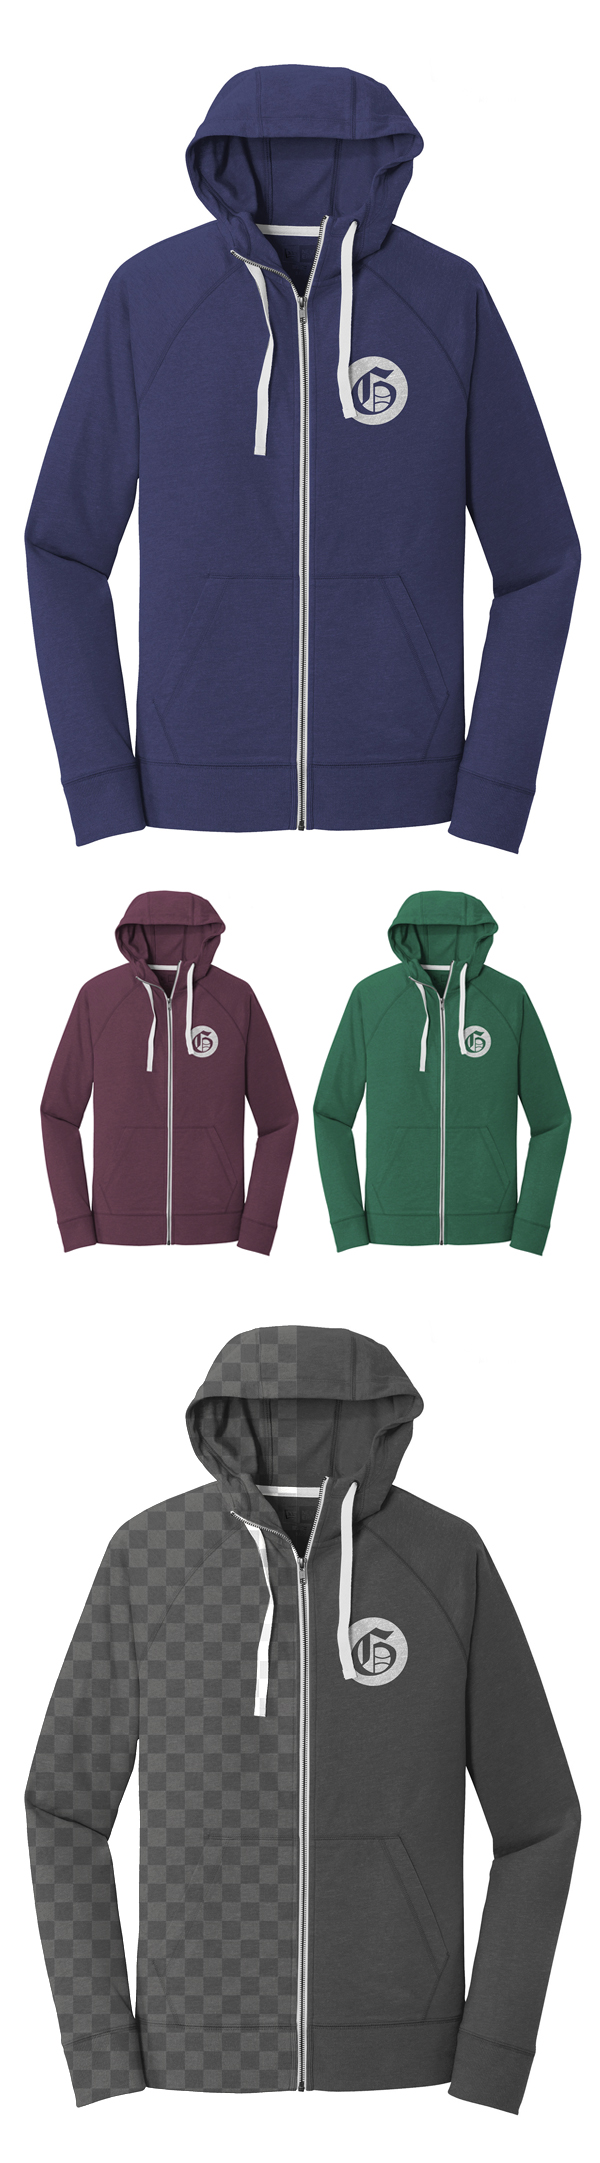 Free Zip-Up Hoodie Mockup Template